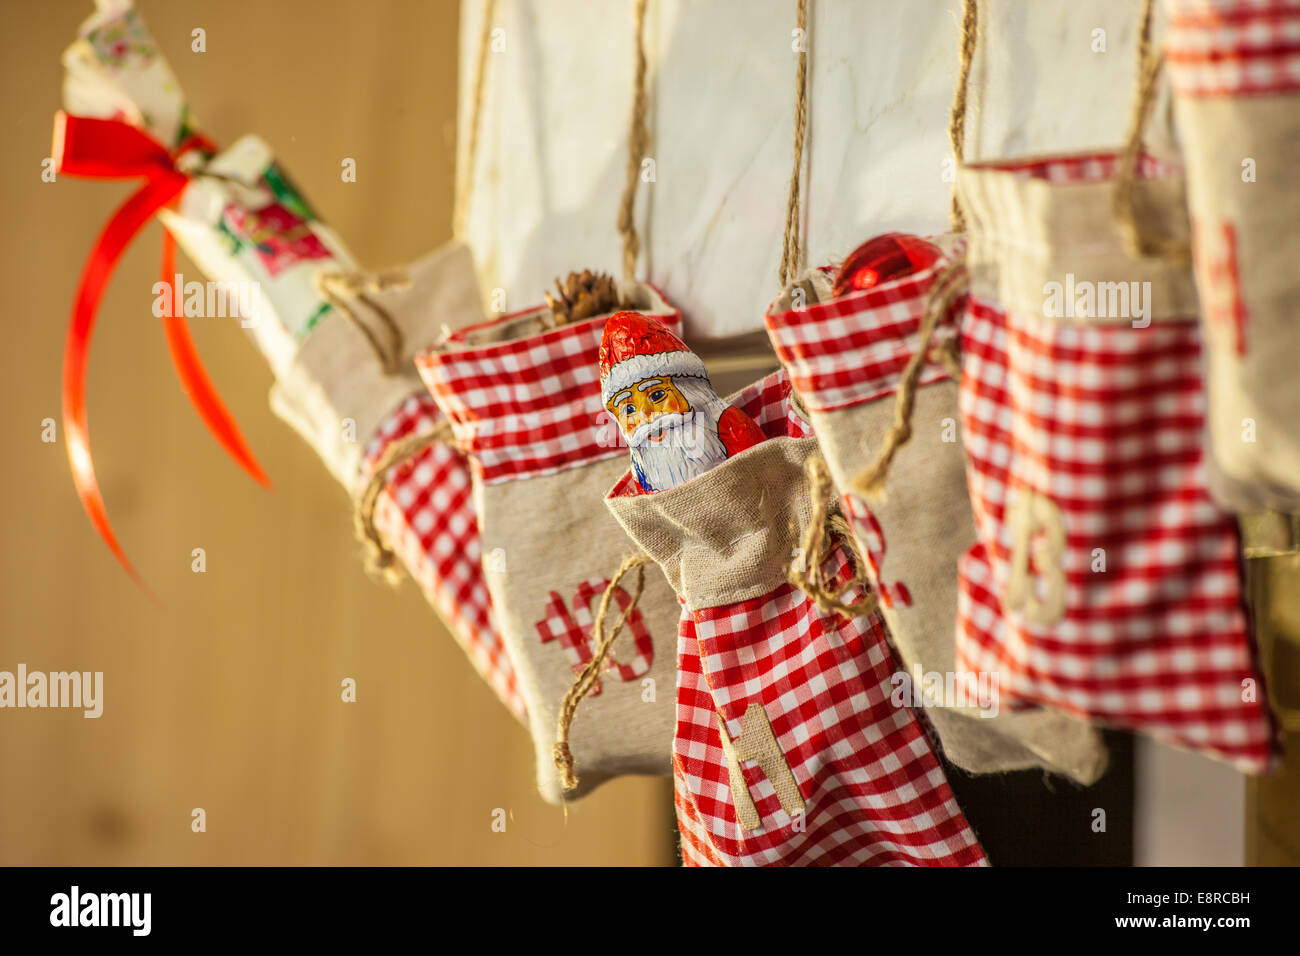 Bags of an advent calendar hanging on the fireplace - Stock Image